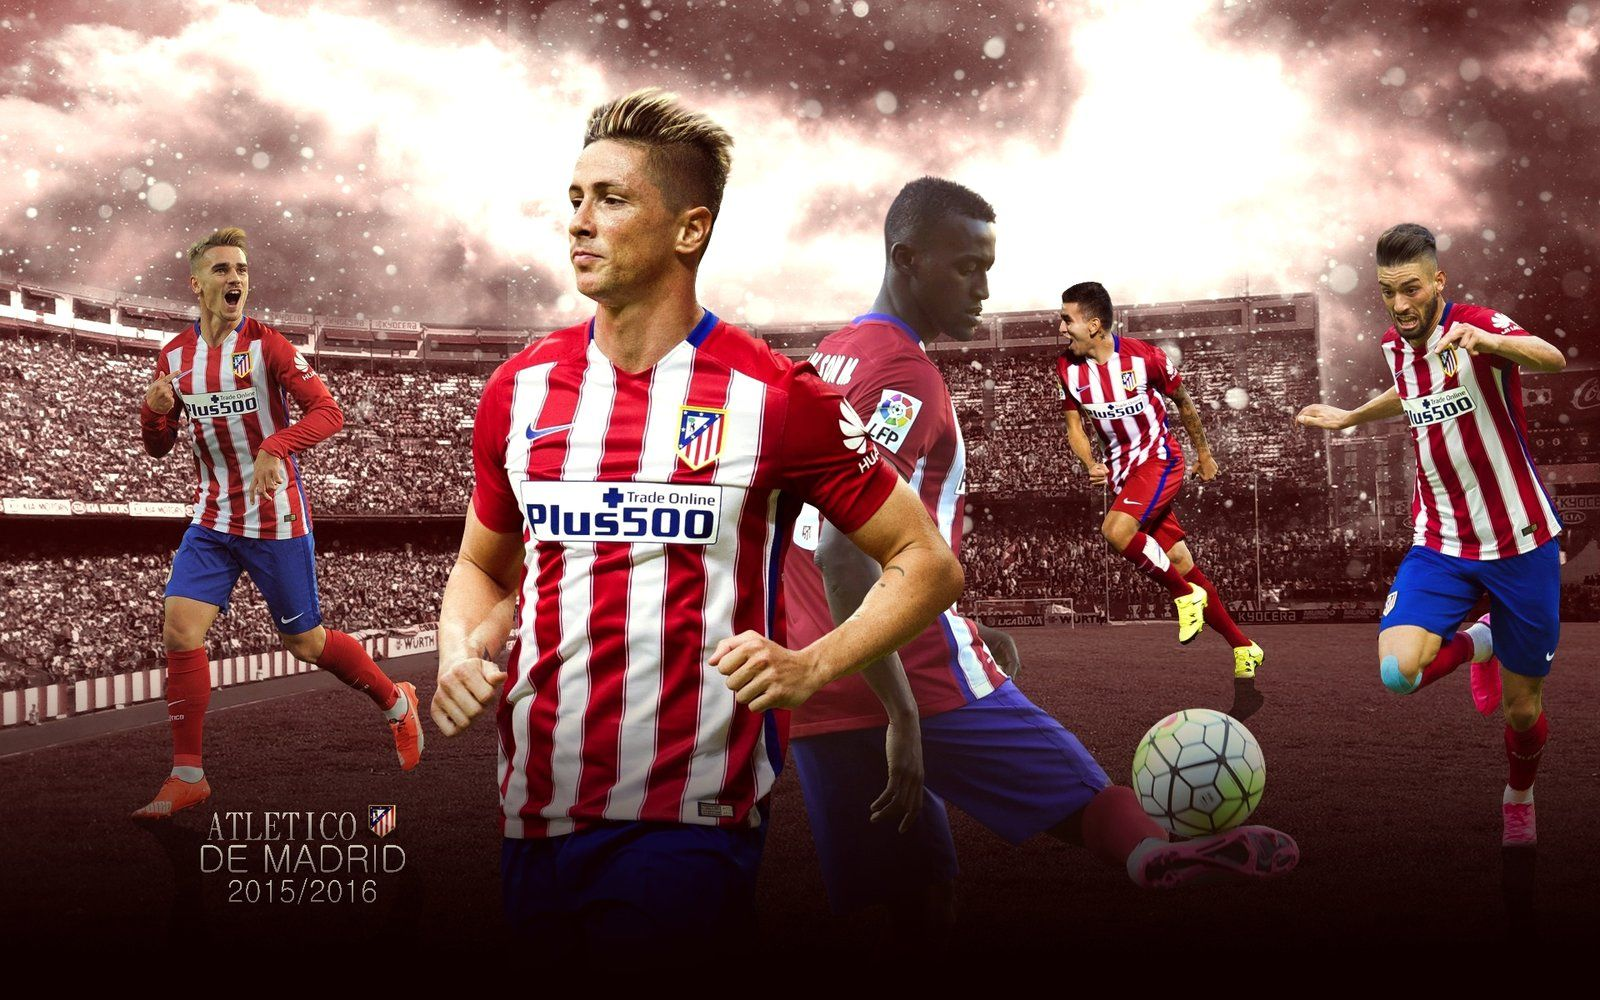 Atletico madrid wallpaper epic car wallpapers pinterest madrid atletico madrid wallpaper voltagebd Gallery